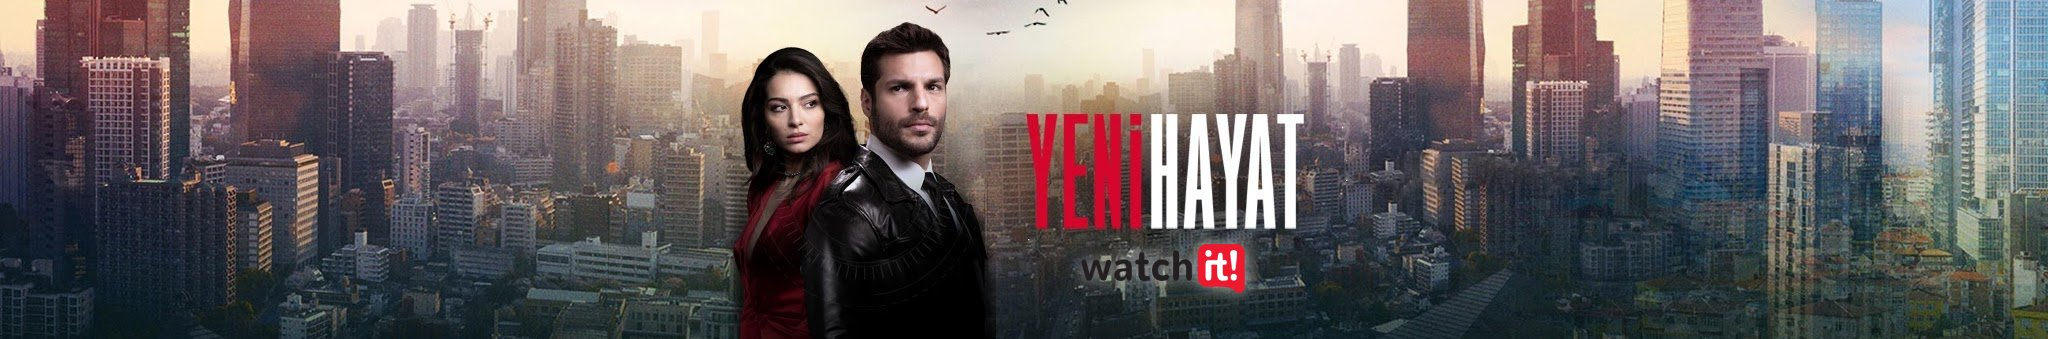 Yeni Hayat English subtitles | New Life